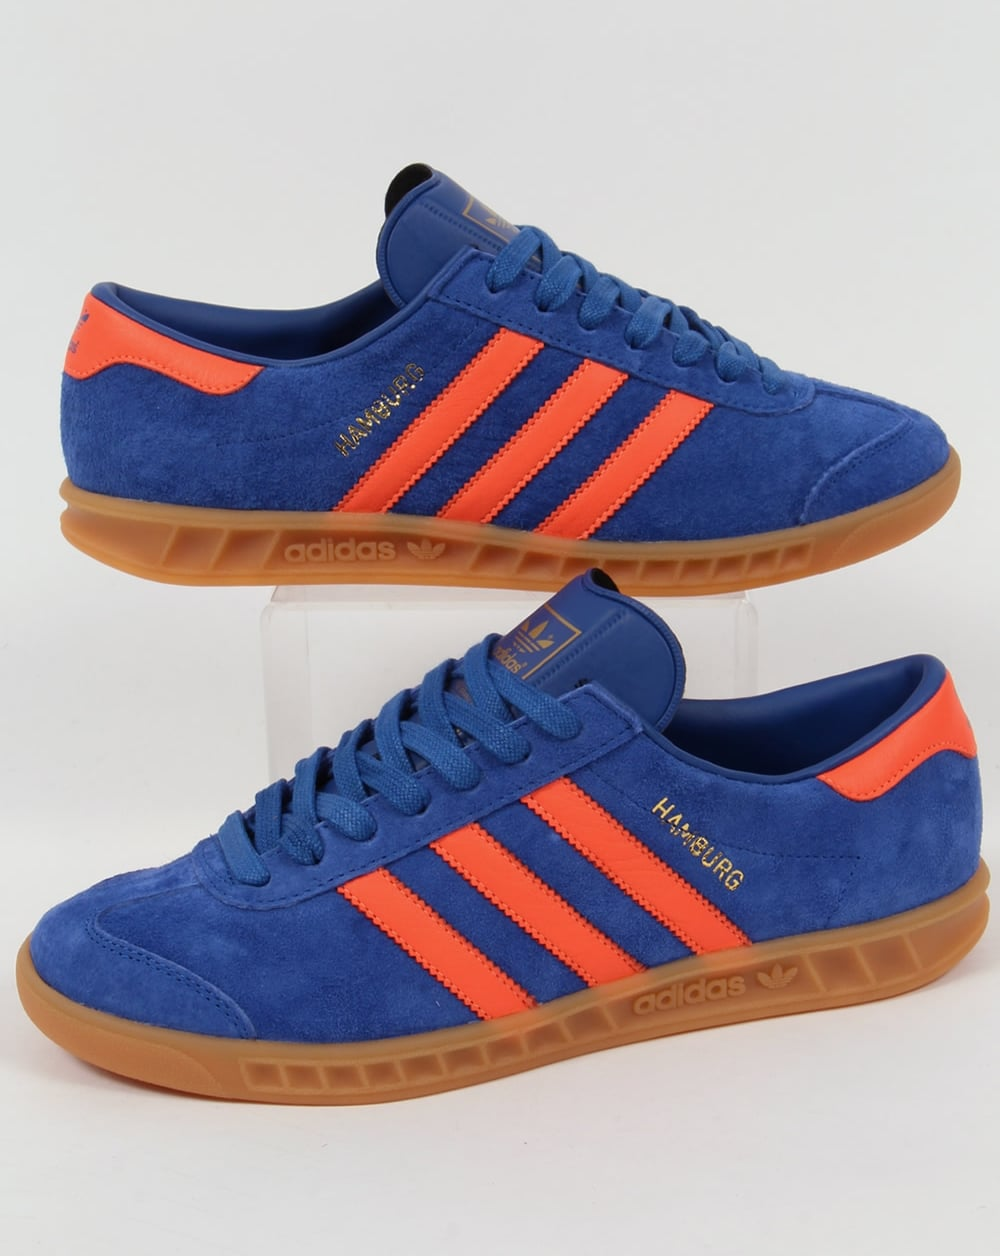 ef5448d98e59 adidas Trainers Adidas Hamburg Trainers Royal Blue Orange Dublin